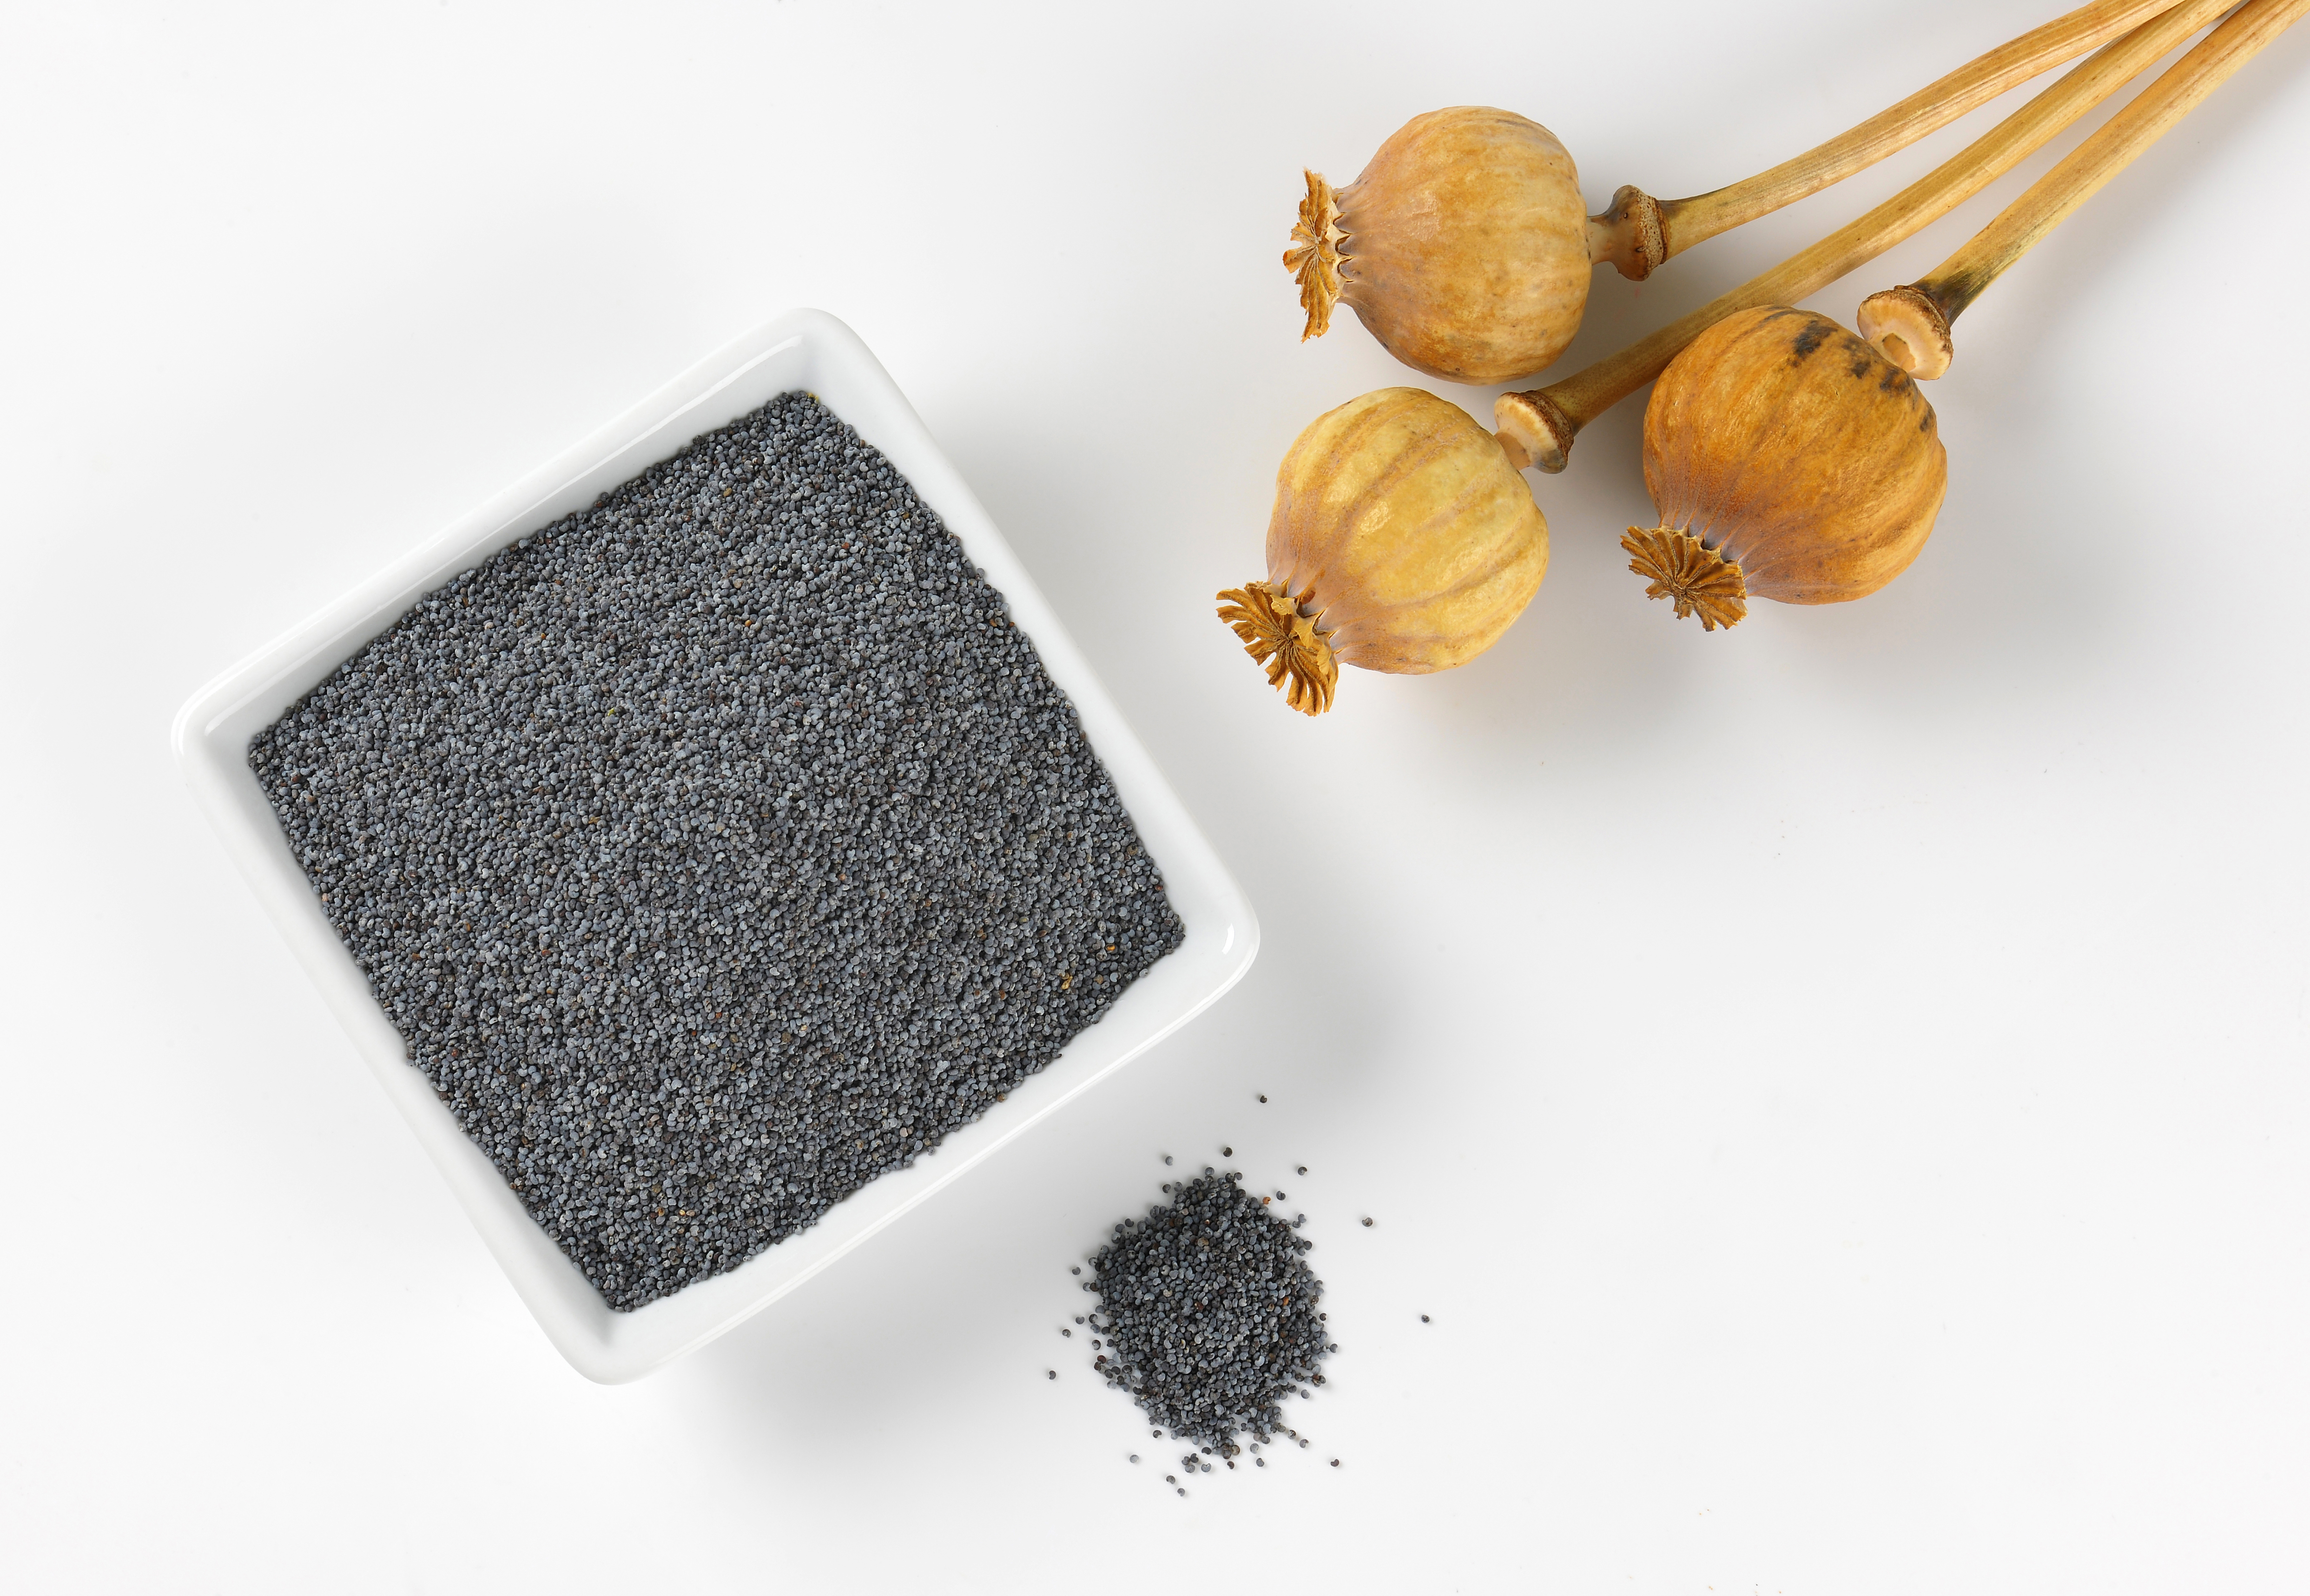 What Are the Benefits of Poppy Seeds? | Healthy Eating | SF Gate